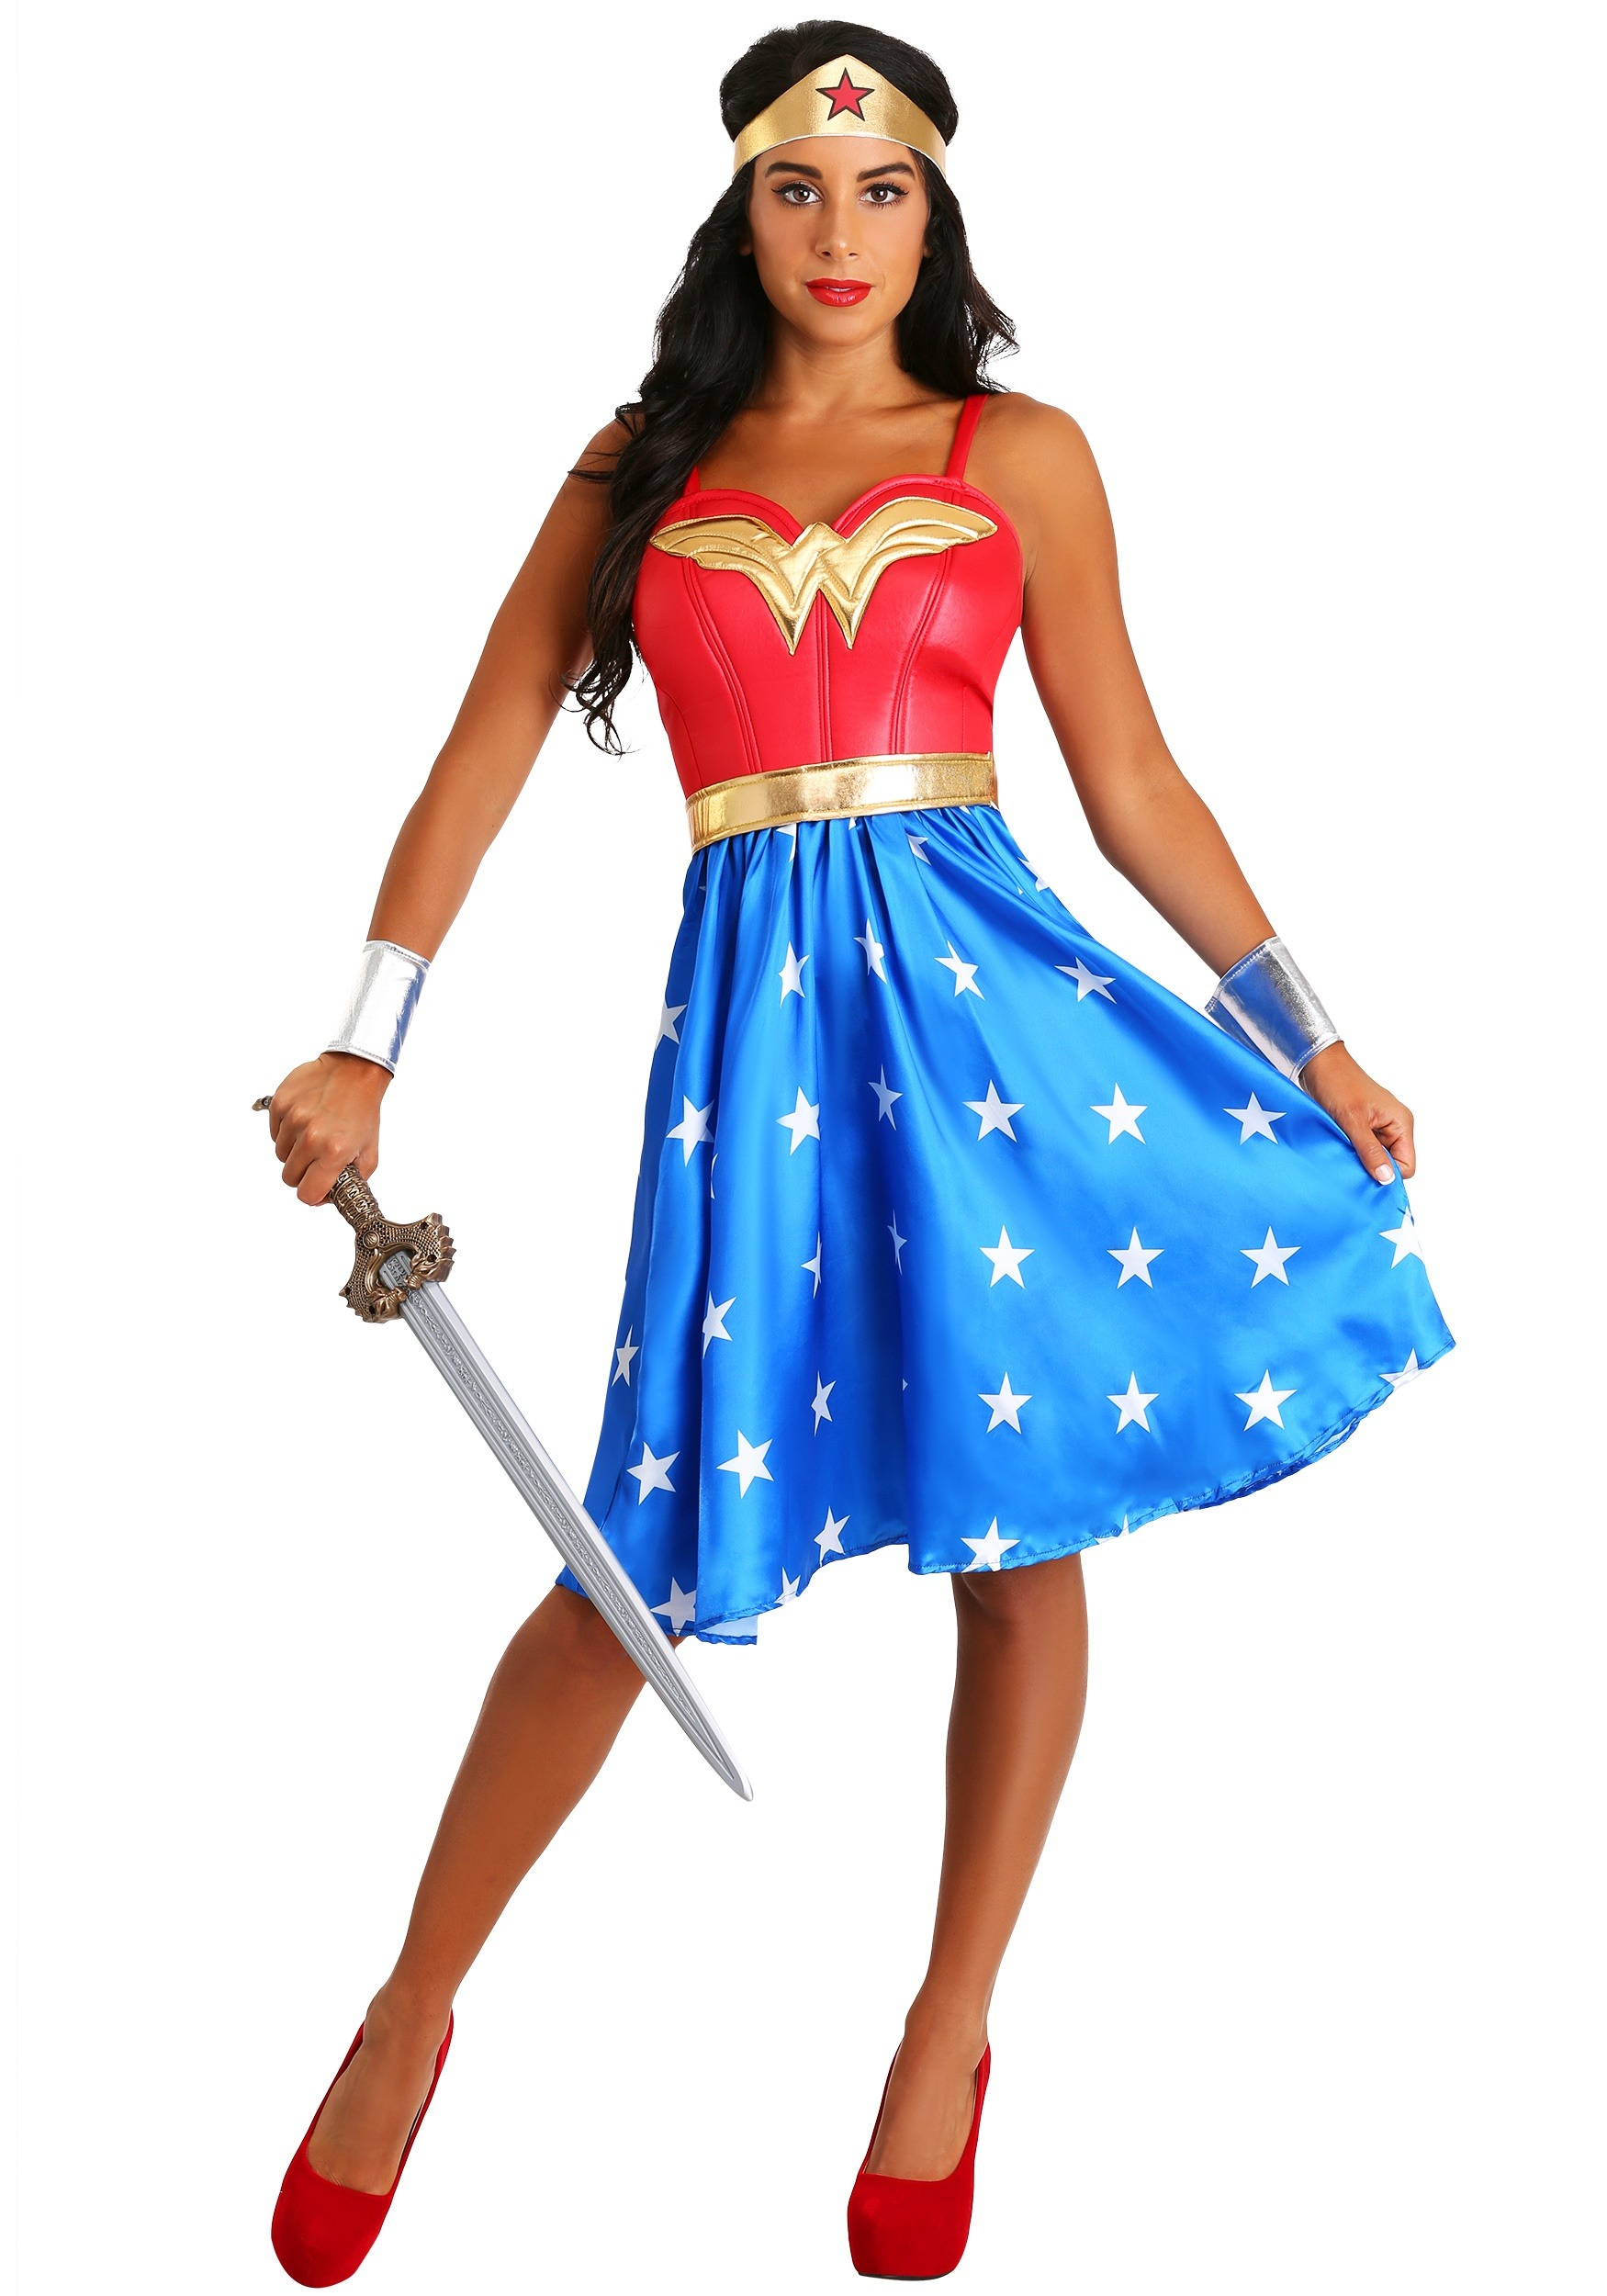 Deluxe Long Dress Wonder Woman Plus Size Costume  sc 1 st  Fun.com & Deluxe Long Dress Wonder Woman Costume for Plus Size